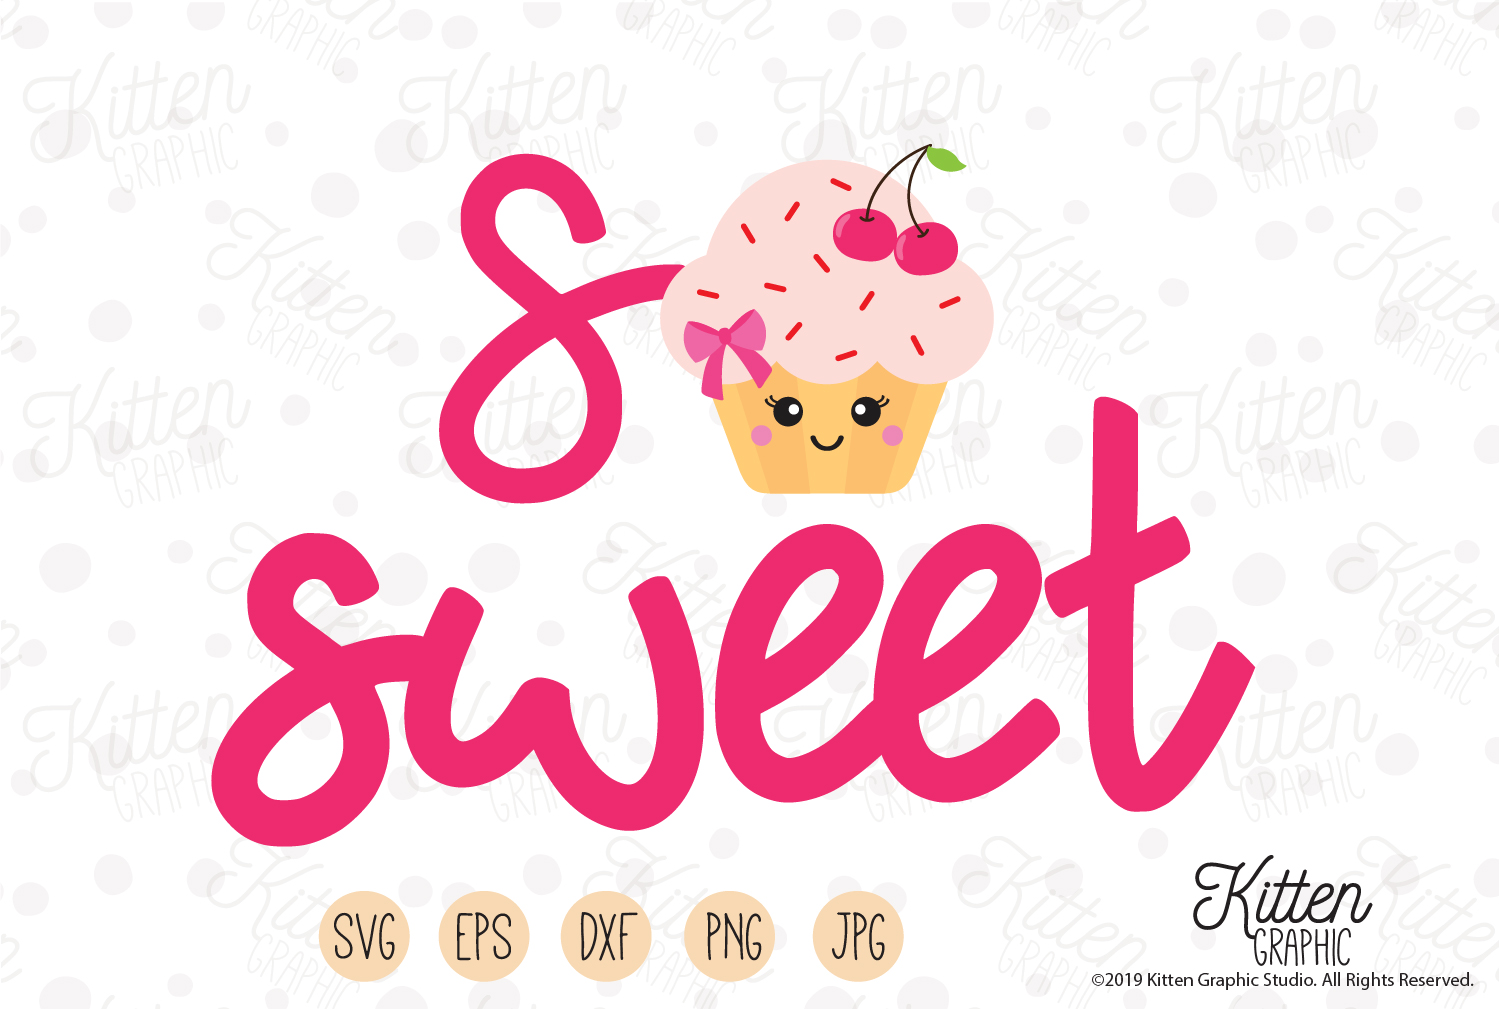 Download Free So Sweet Graphic By Kittengraphicstudio Creative Fabrica for Cricut Explore, Silhouette and other cutting machines.